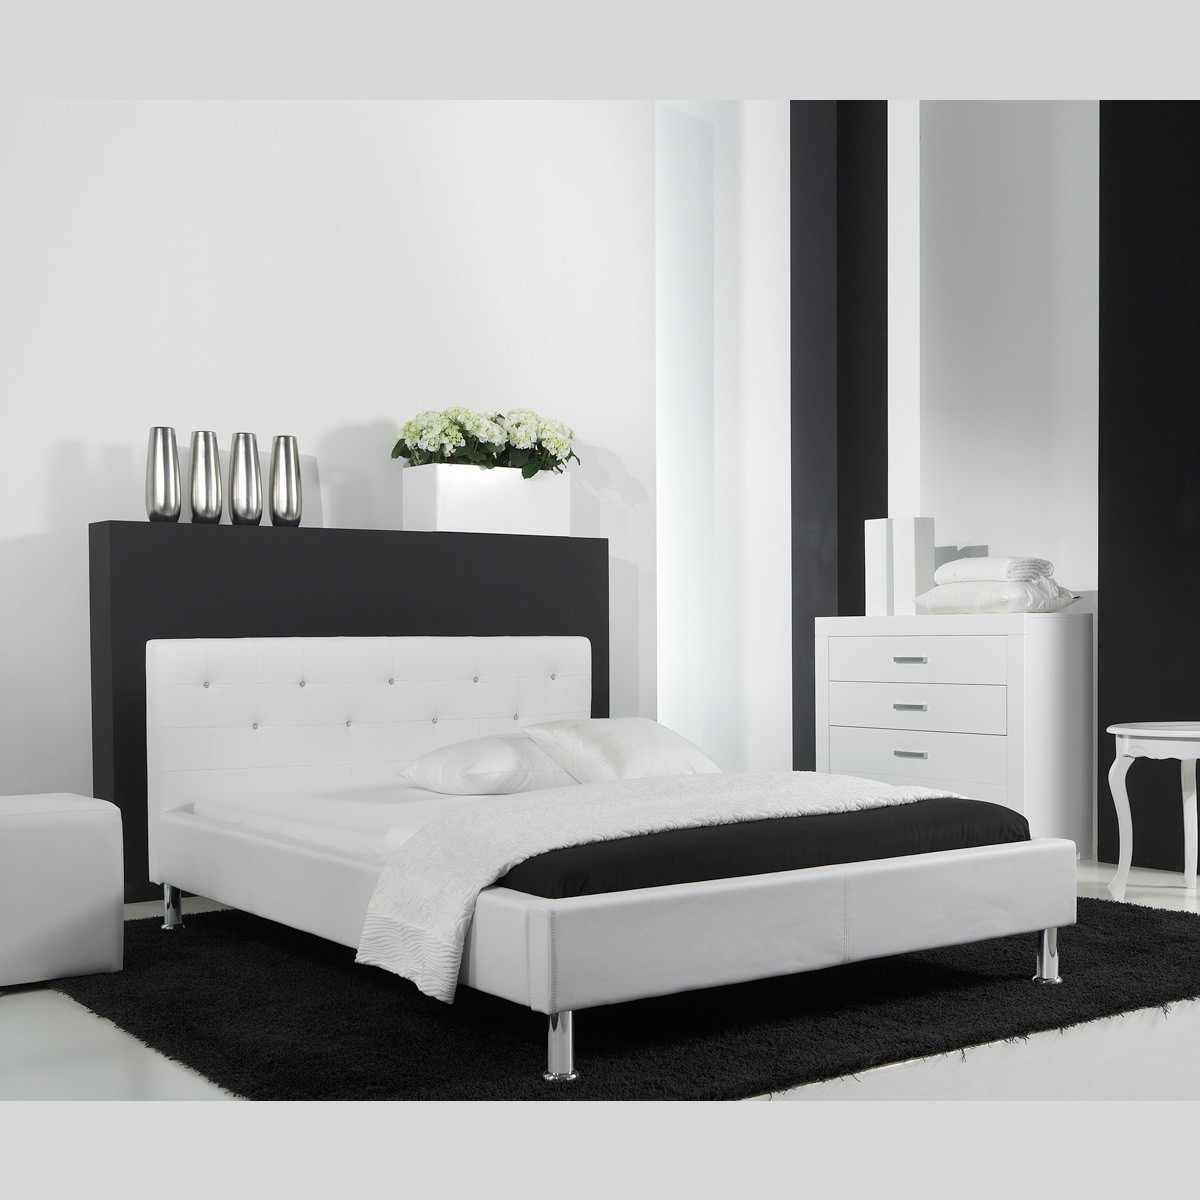 bett 140x200 angebote auf waterige. Black Bedroom Furniture Sets. Home Design Ideas